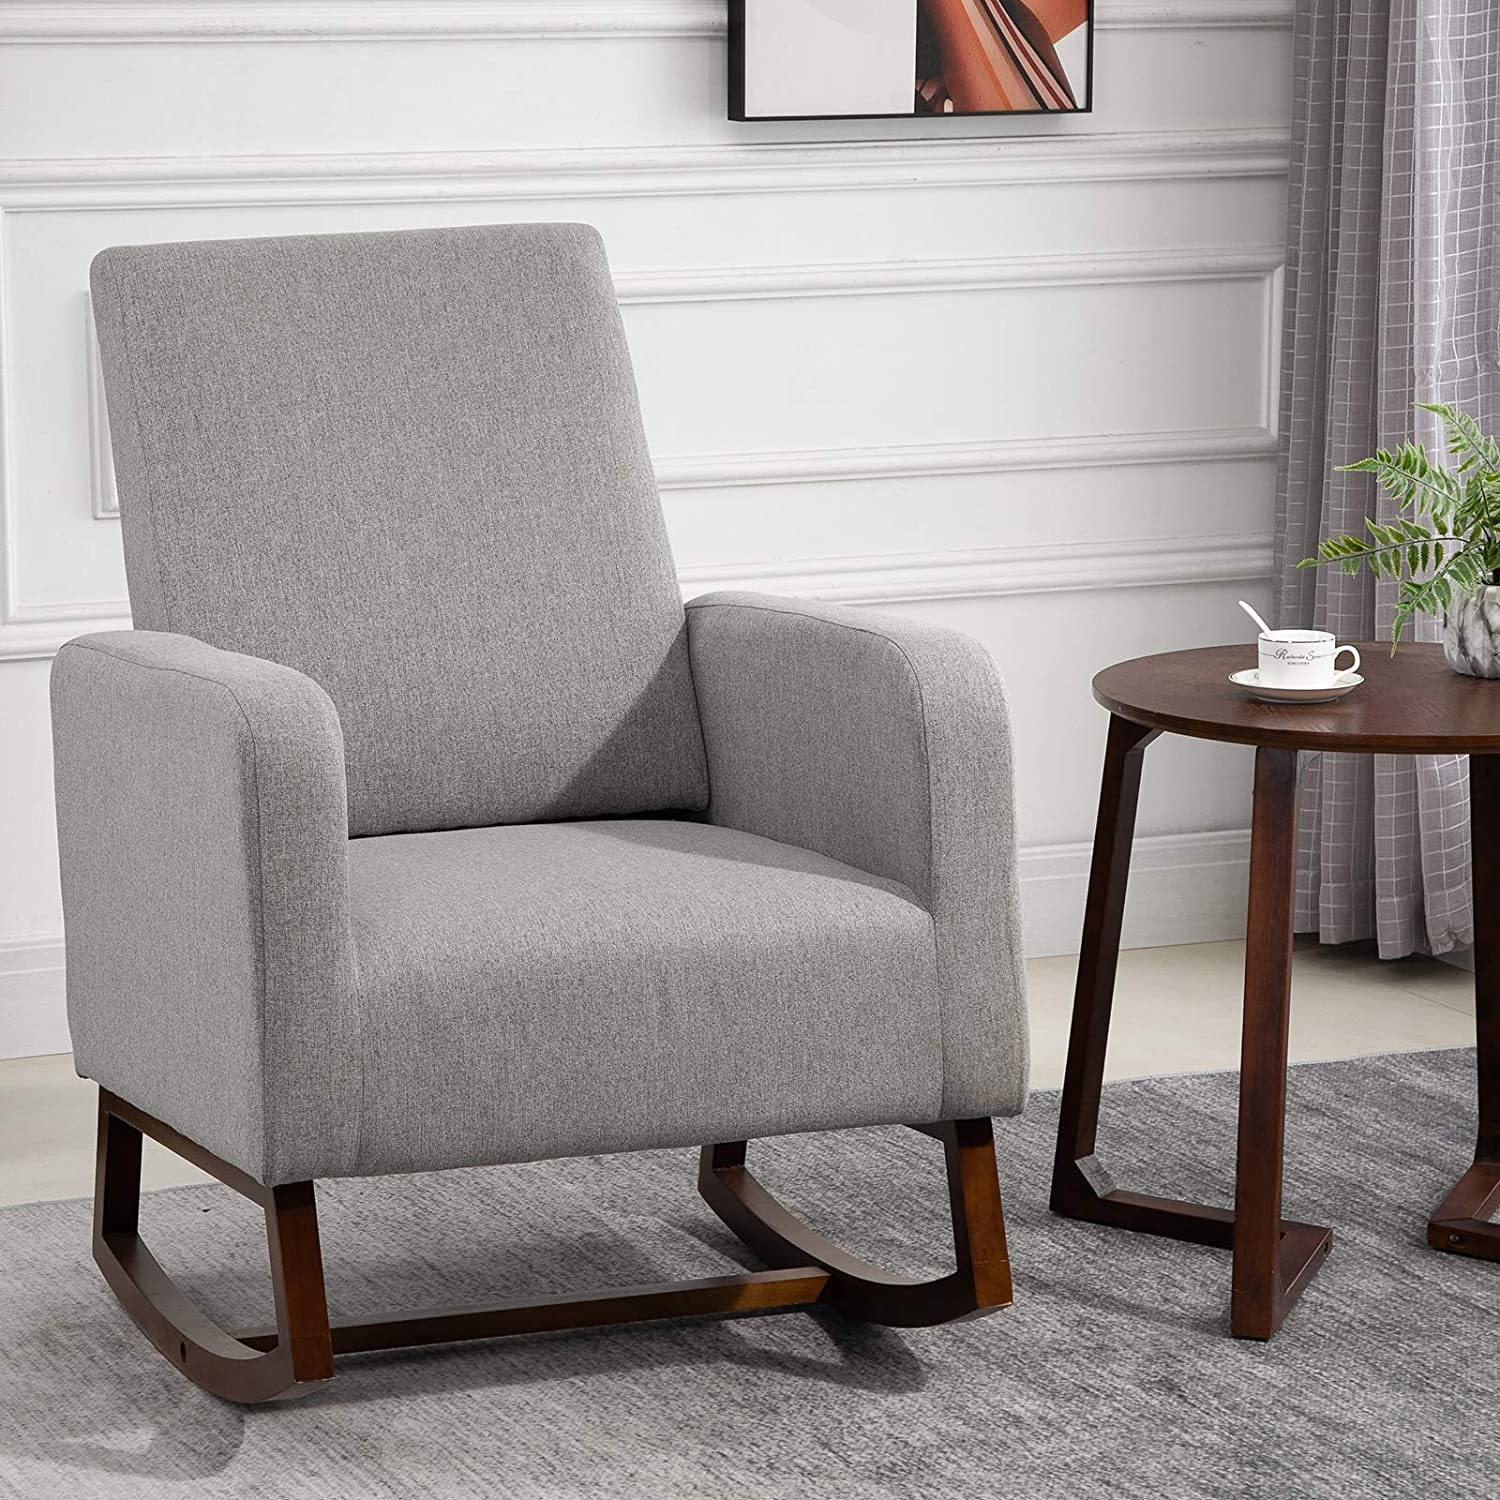 Cream White HOMCOM Accent Lounge Rocking Chair with Solid Curved Wood Base and Linen Padded Seat